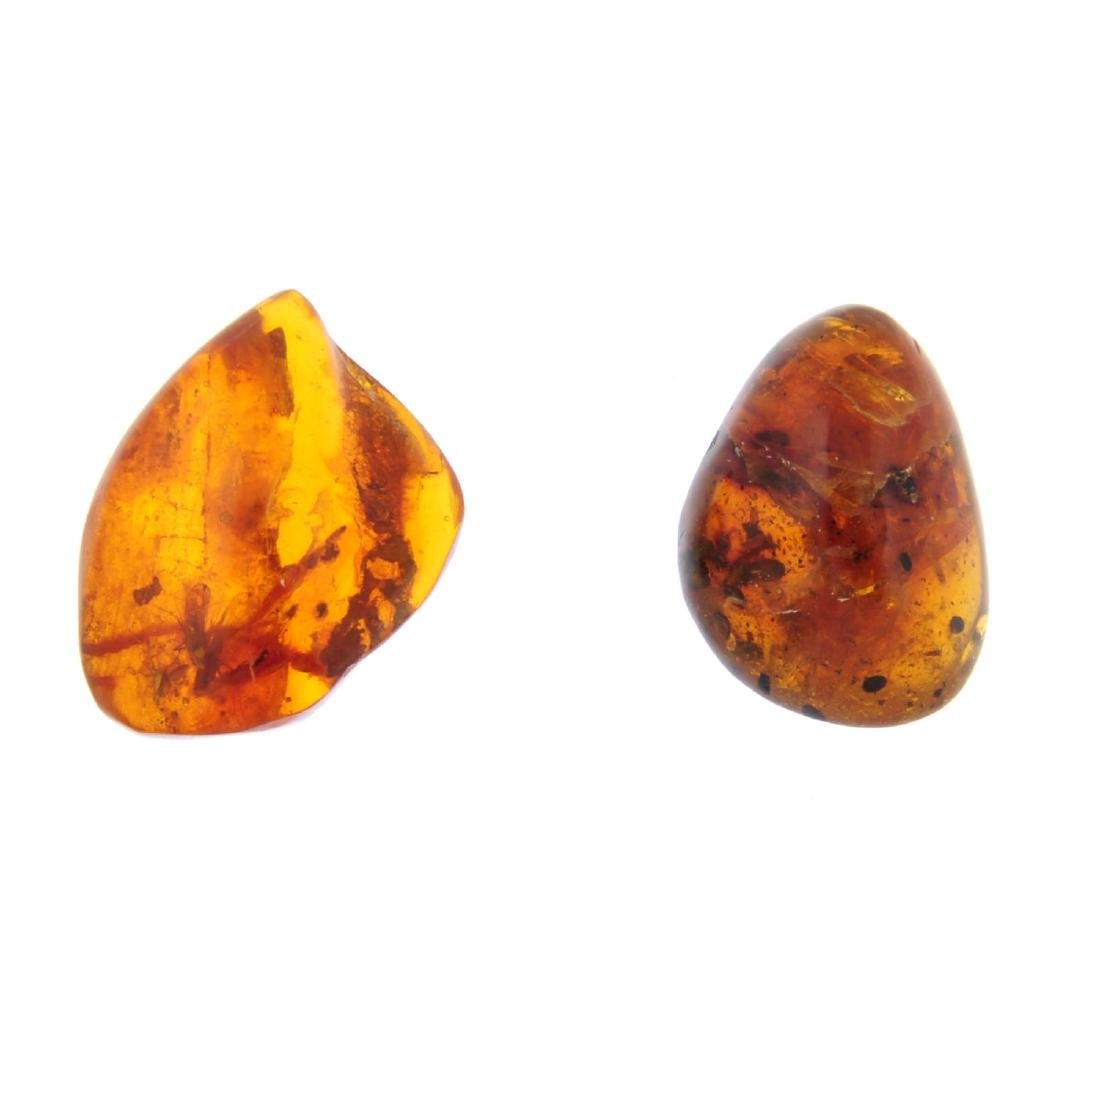 Two natural Baltic amber polished pieces with insect